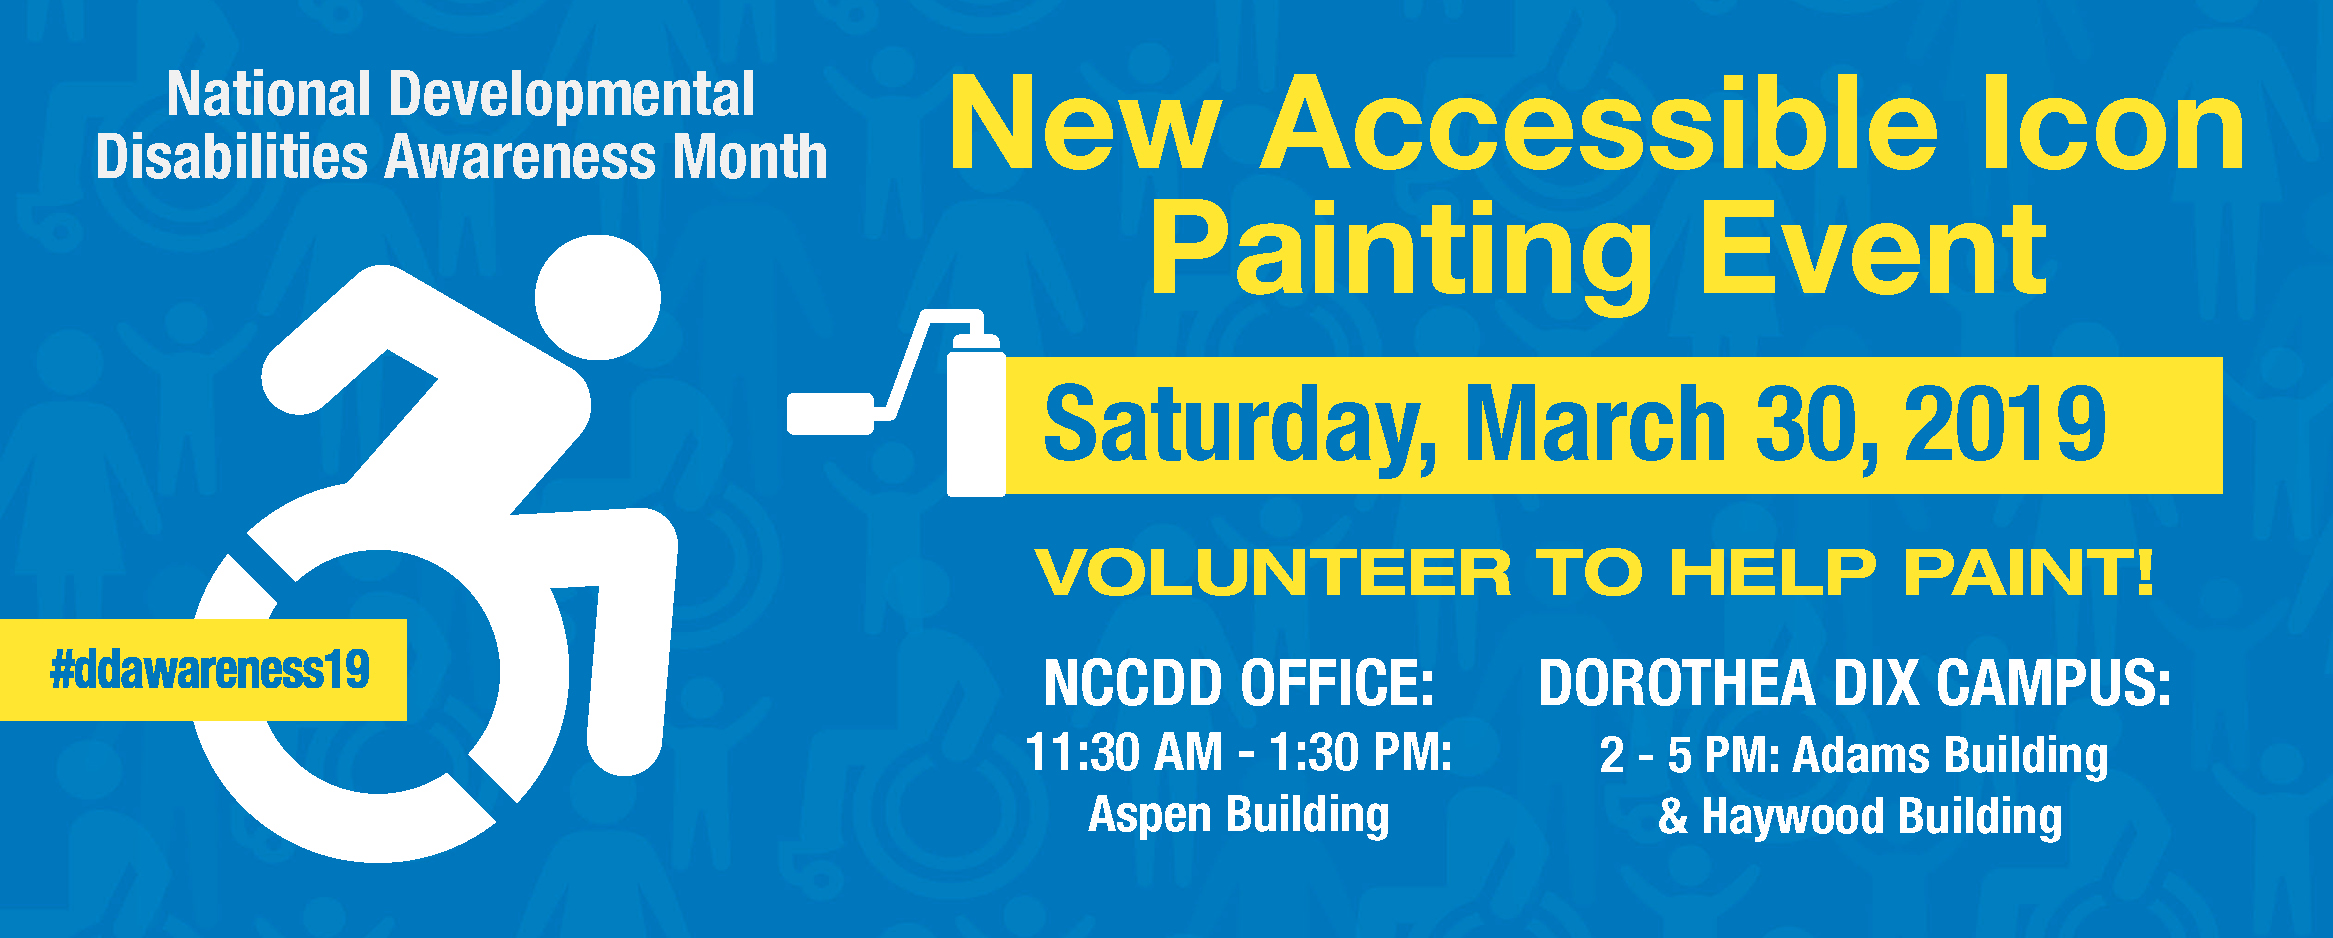 New Accessible Icon Painting Event - Sat, March 30